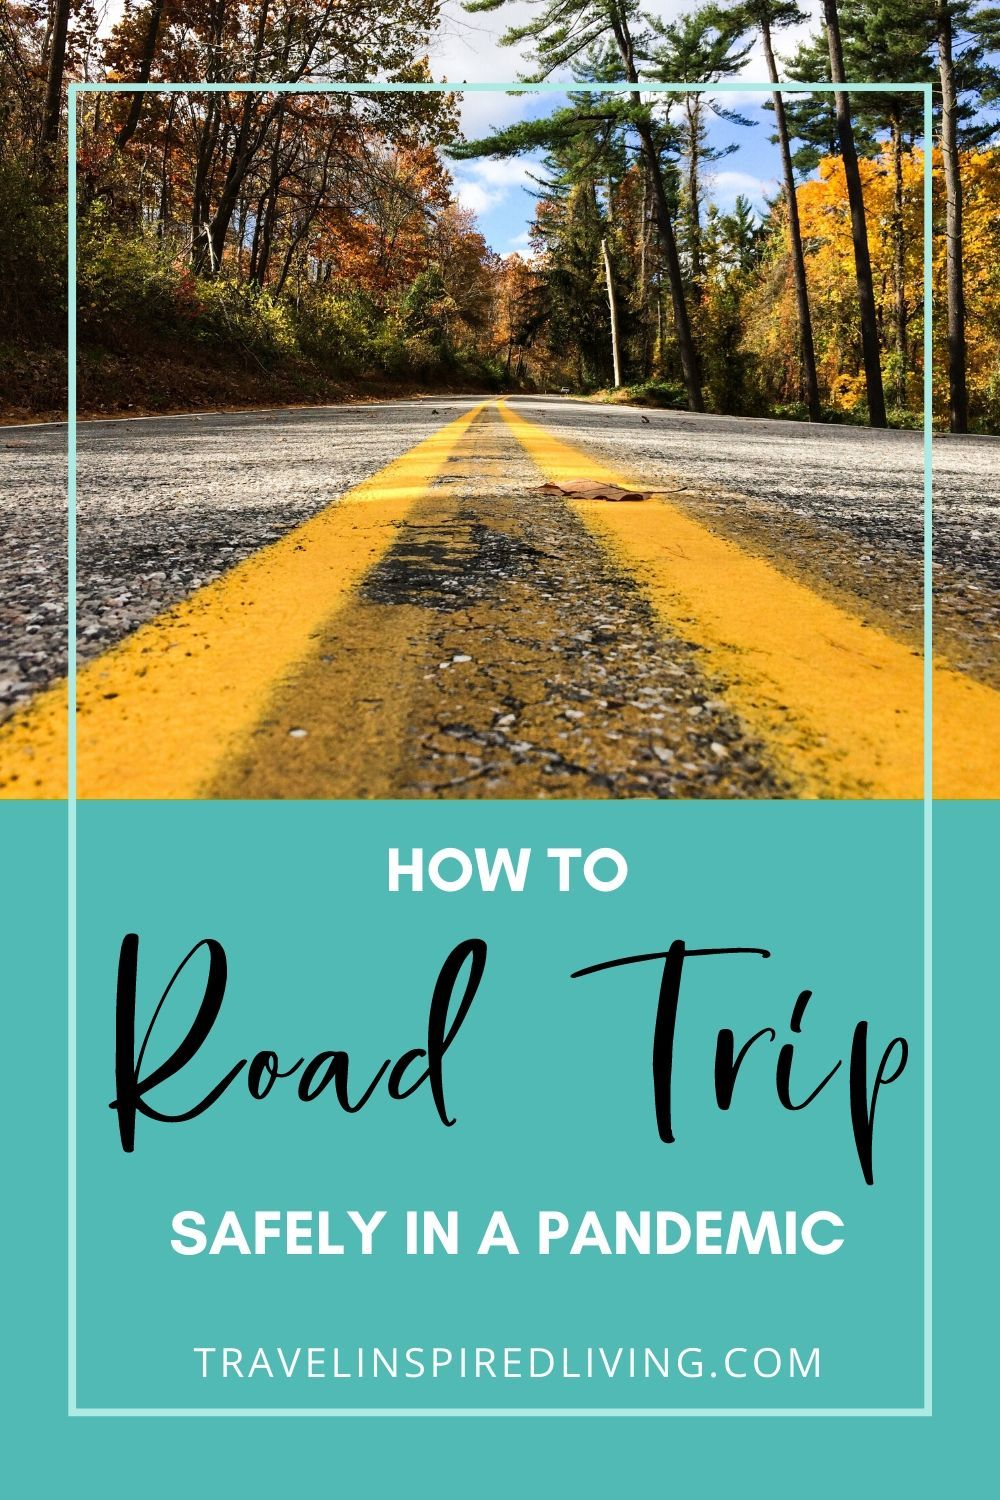 Pandemic Road Trip Safety Tips